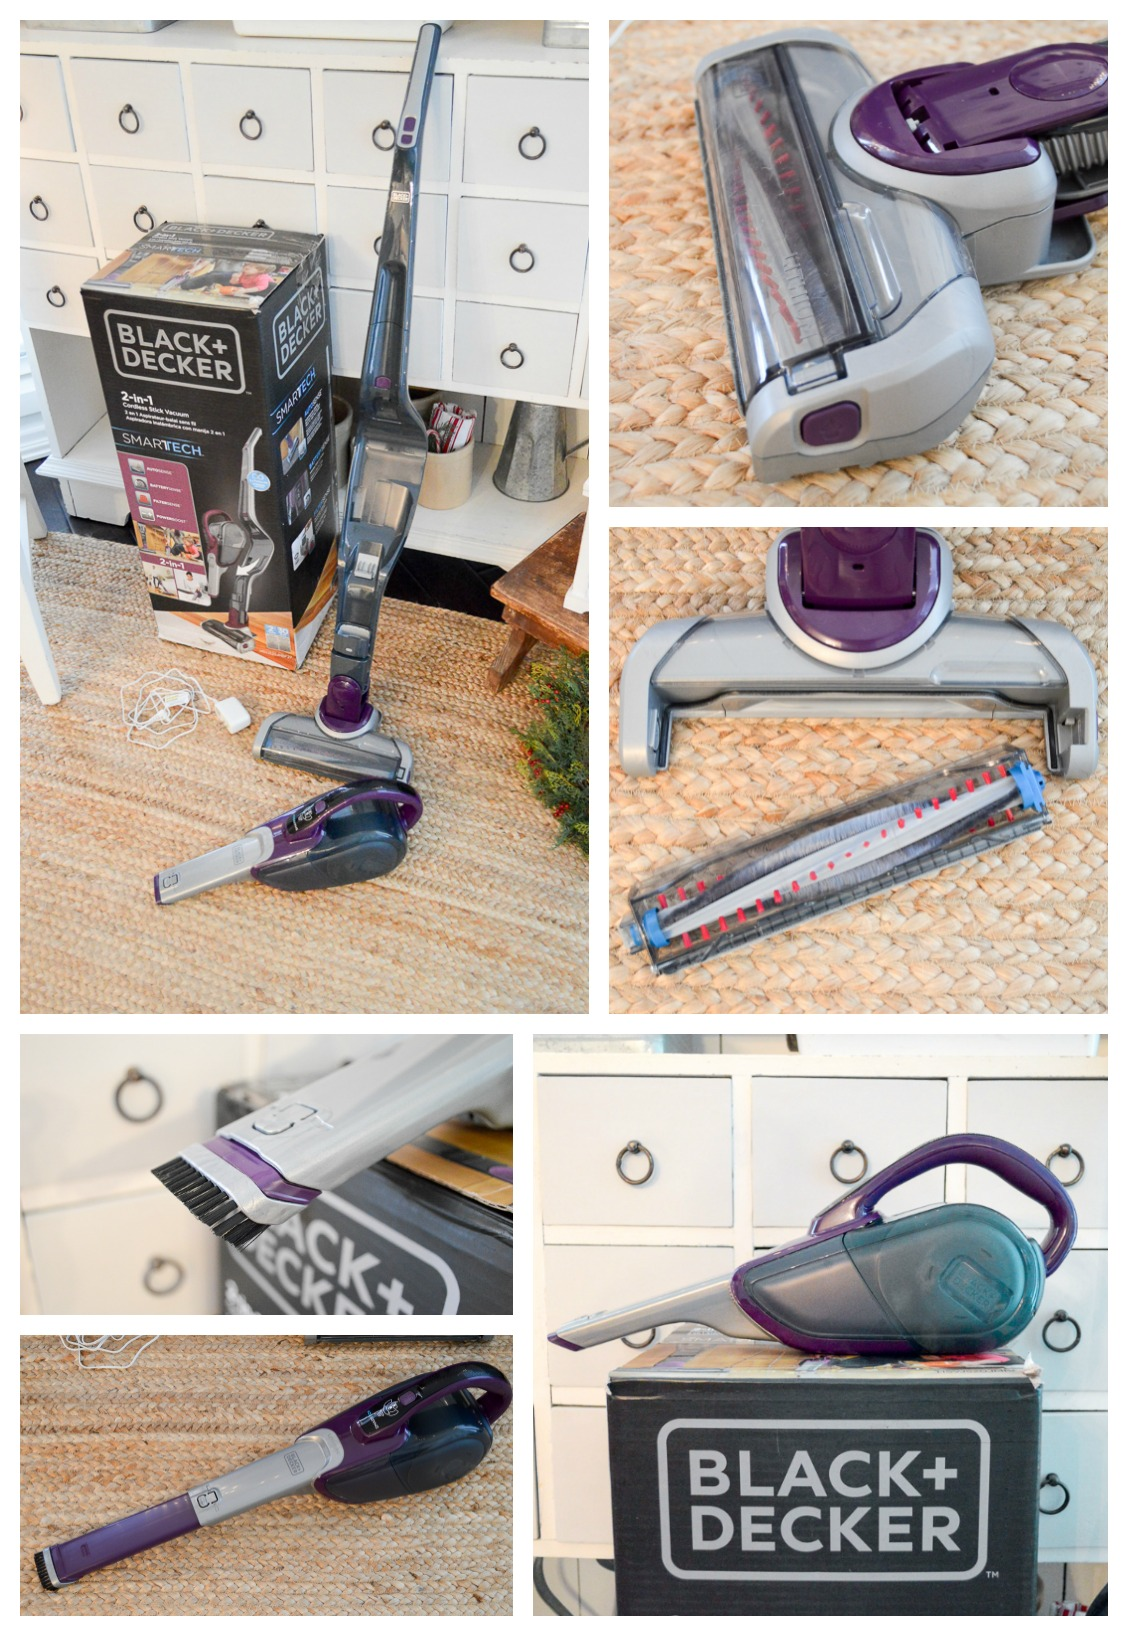 merry-messes-black-and-decker-stick-vac-vacuum-features-cleaning-clean-housekeeping